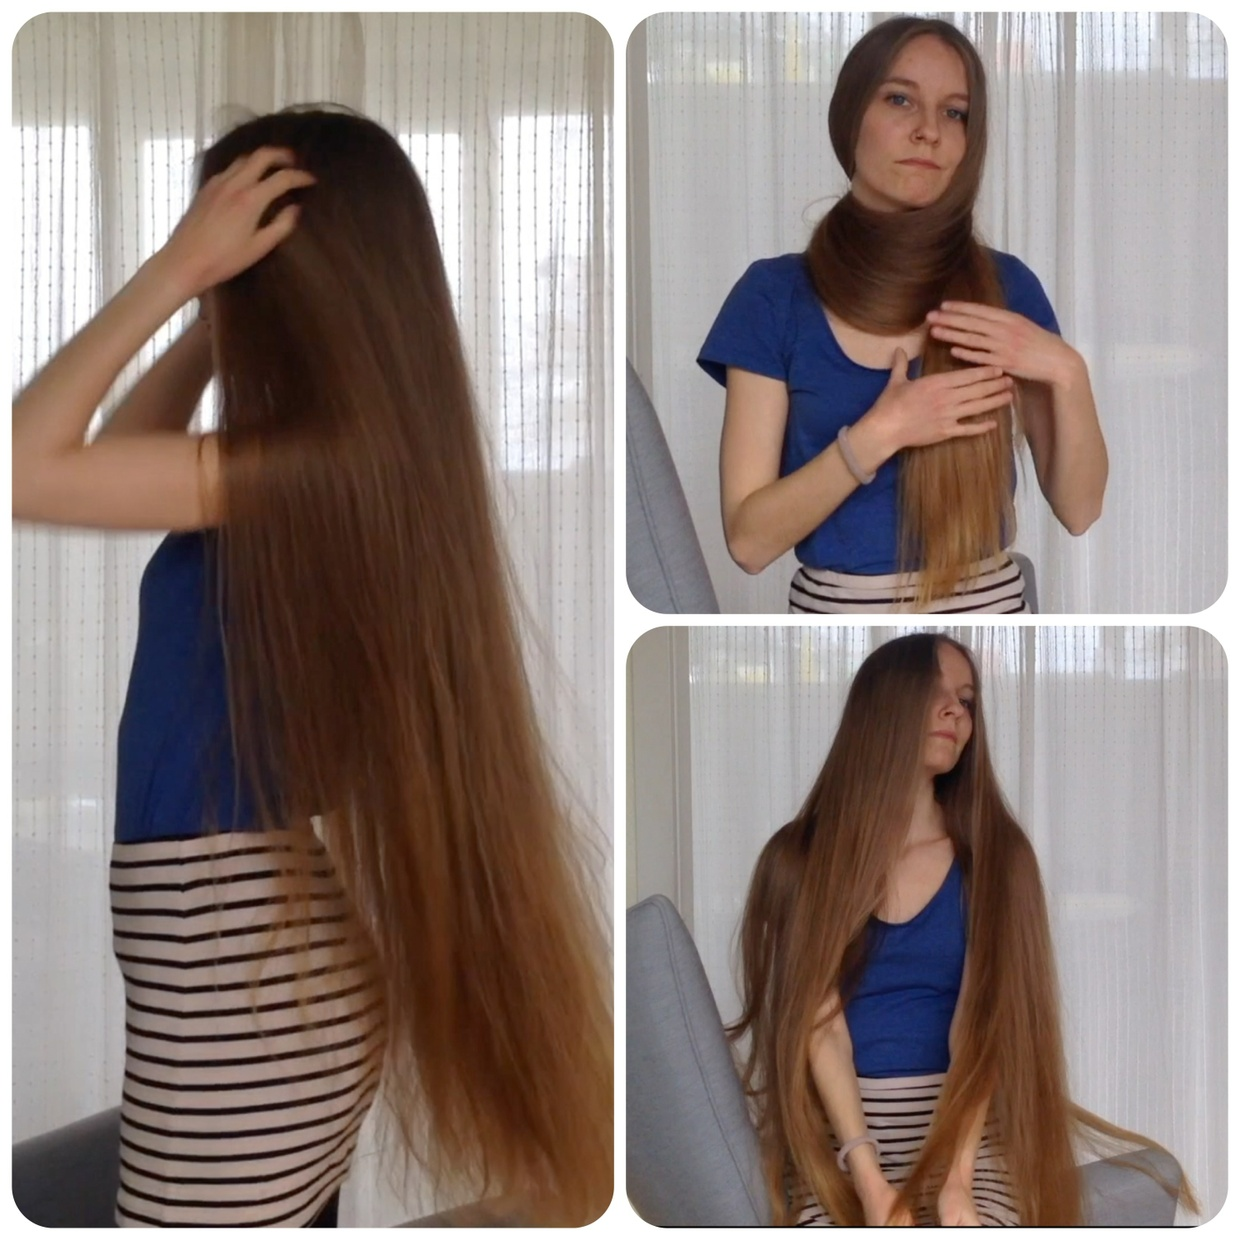 VIDEO - Top quality hair 4 - Long haired singer